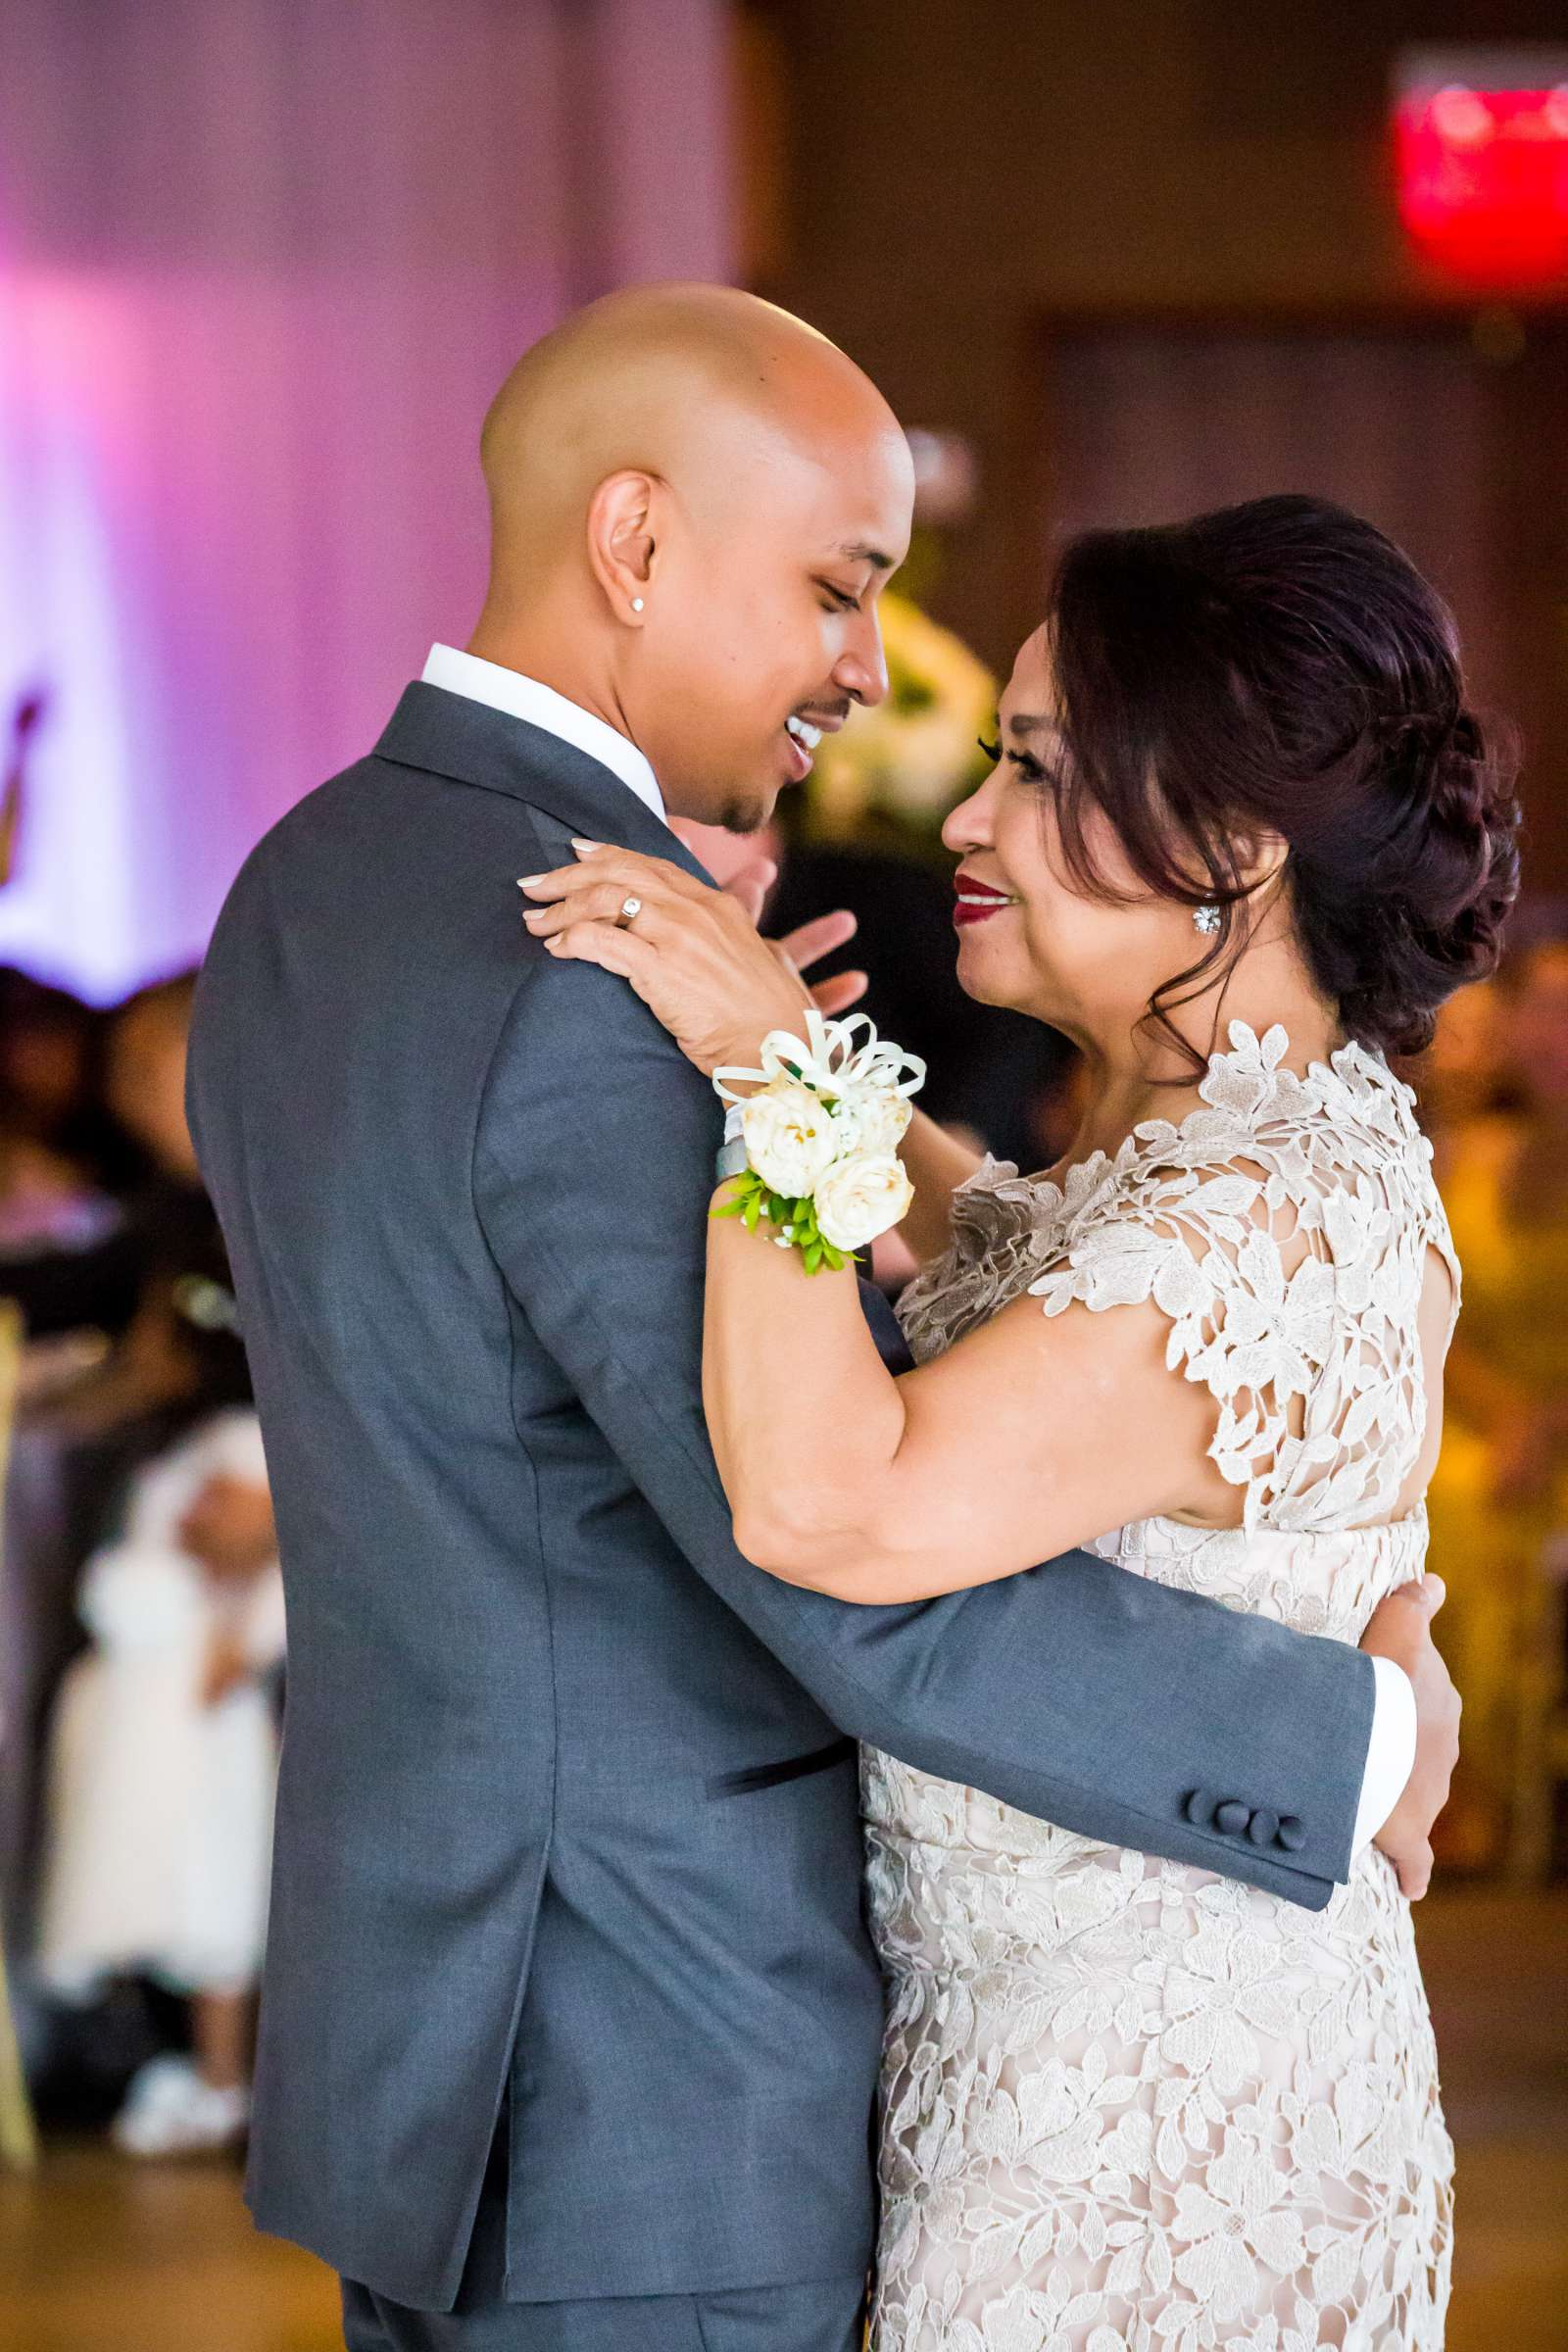 Scripps Seaside Forum Wedding coordinated by Lavish Weddings, Cindy and Justin Wedding Photo #381868 by True Photography